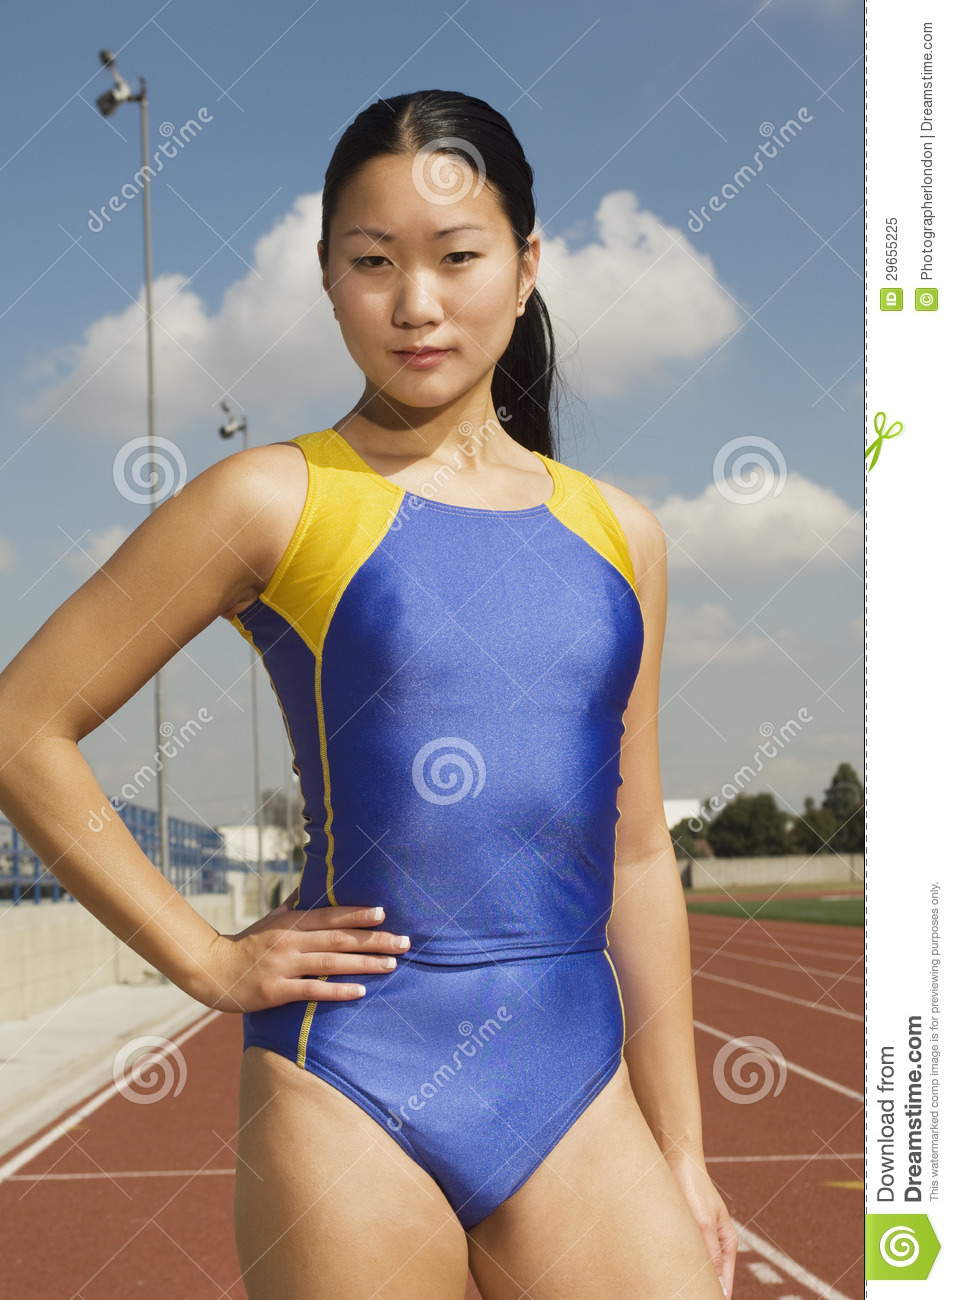 Porn athletes female asian